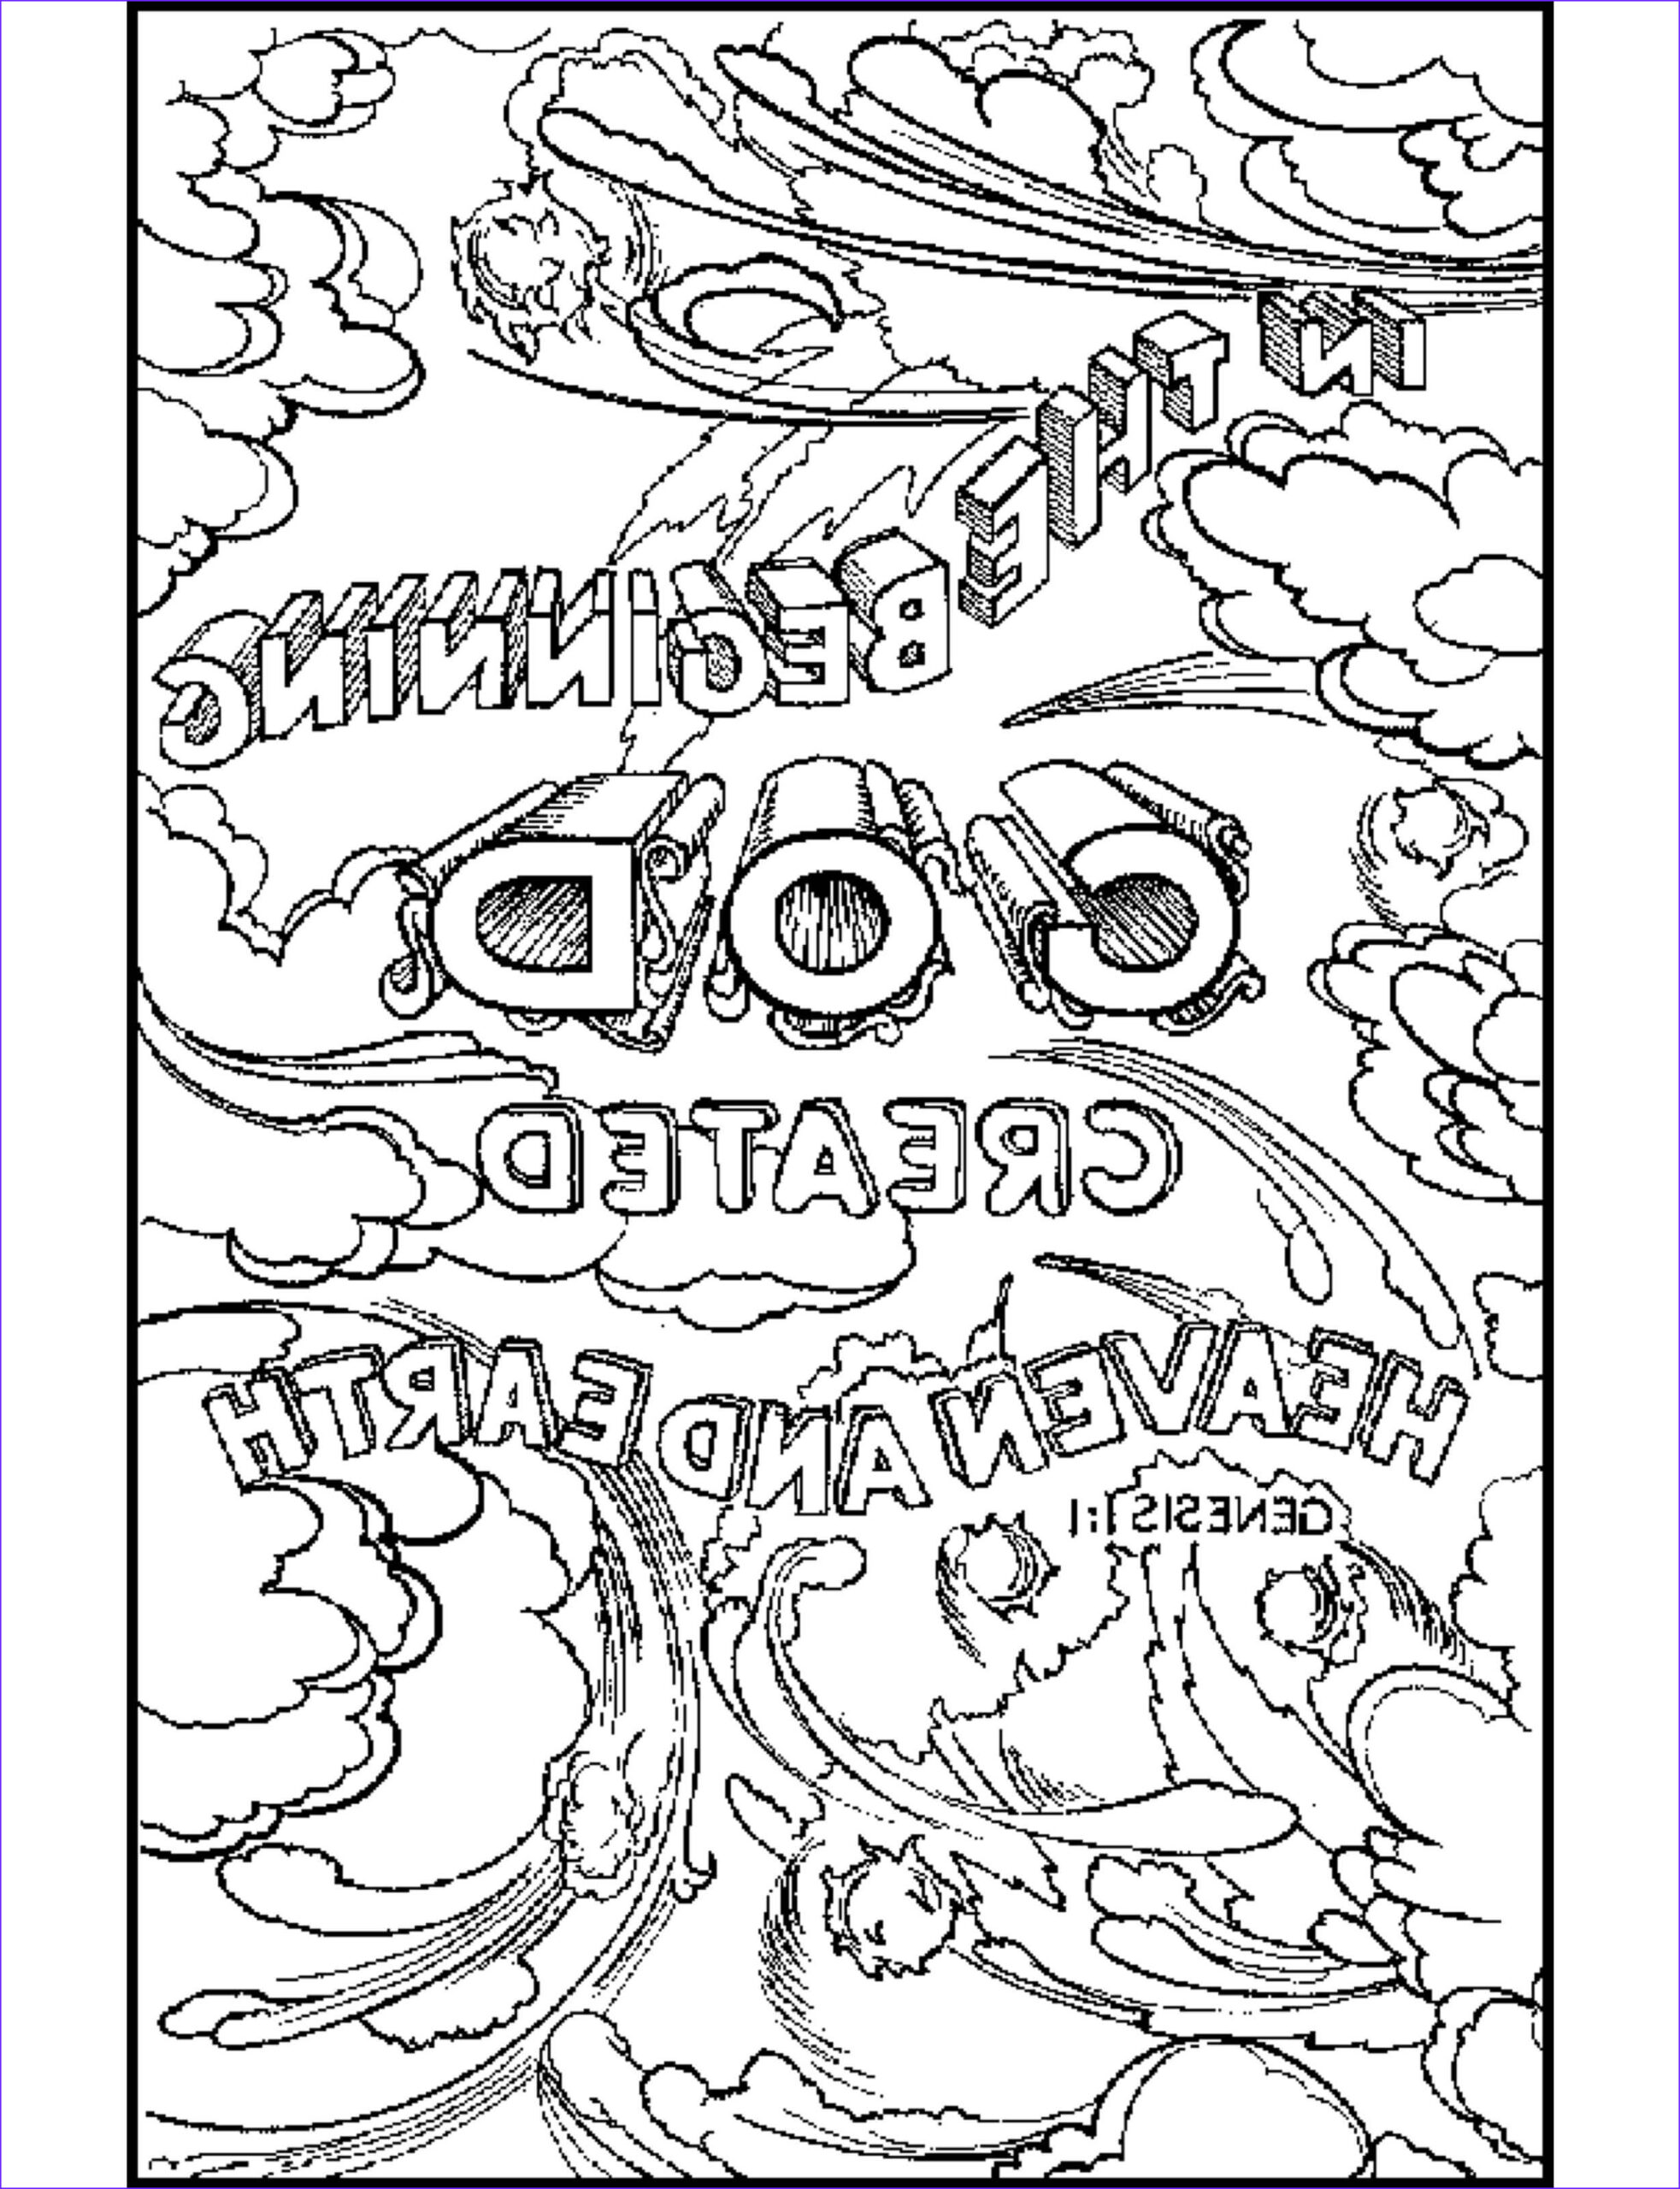 Coloring Pages Bible Verses Beautiful Photos Scripture Lady S Abda Acts Art and Publishing Coloring Pages